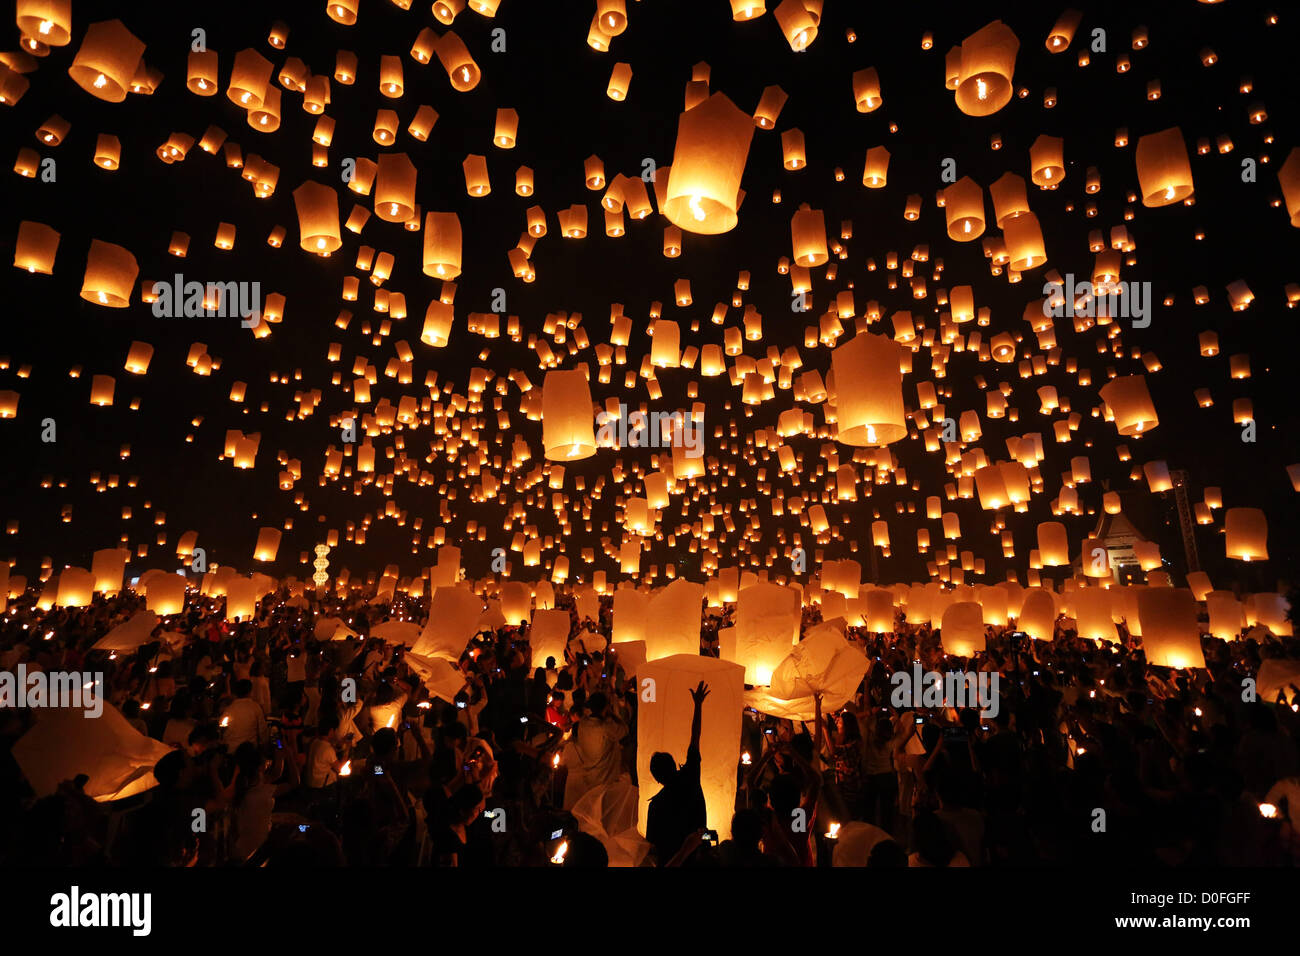 Chiang Mai, Thailand. 24th November 2012. Khom Loy Lanterns at the Yee Peng Sansai Floating Lantern Ceremony, part - Stock Image